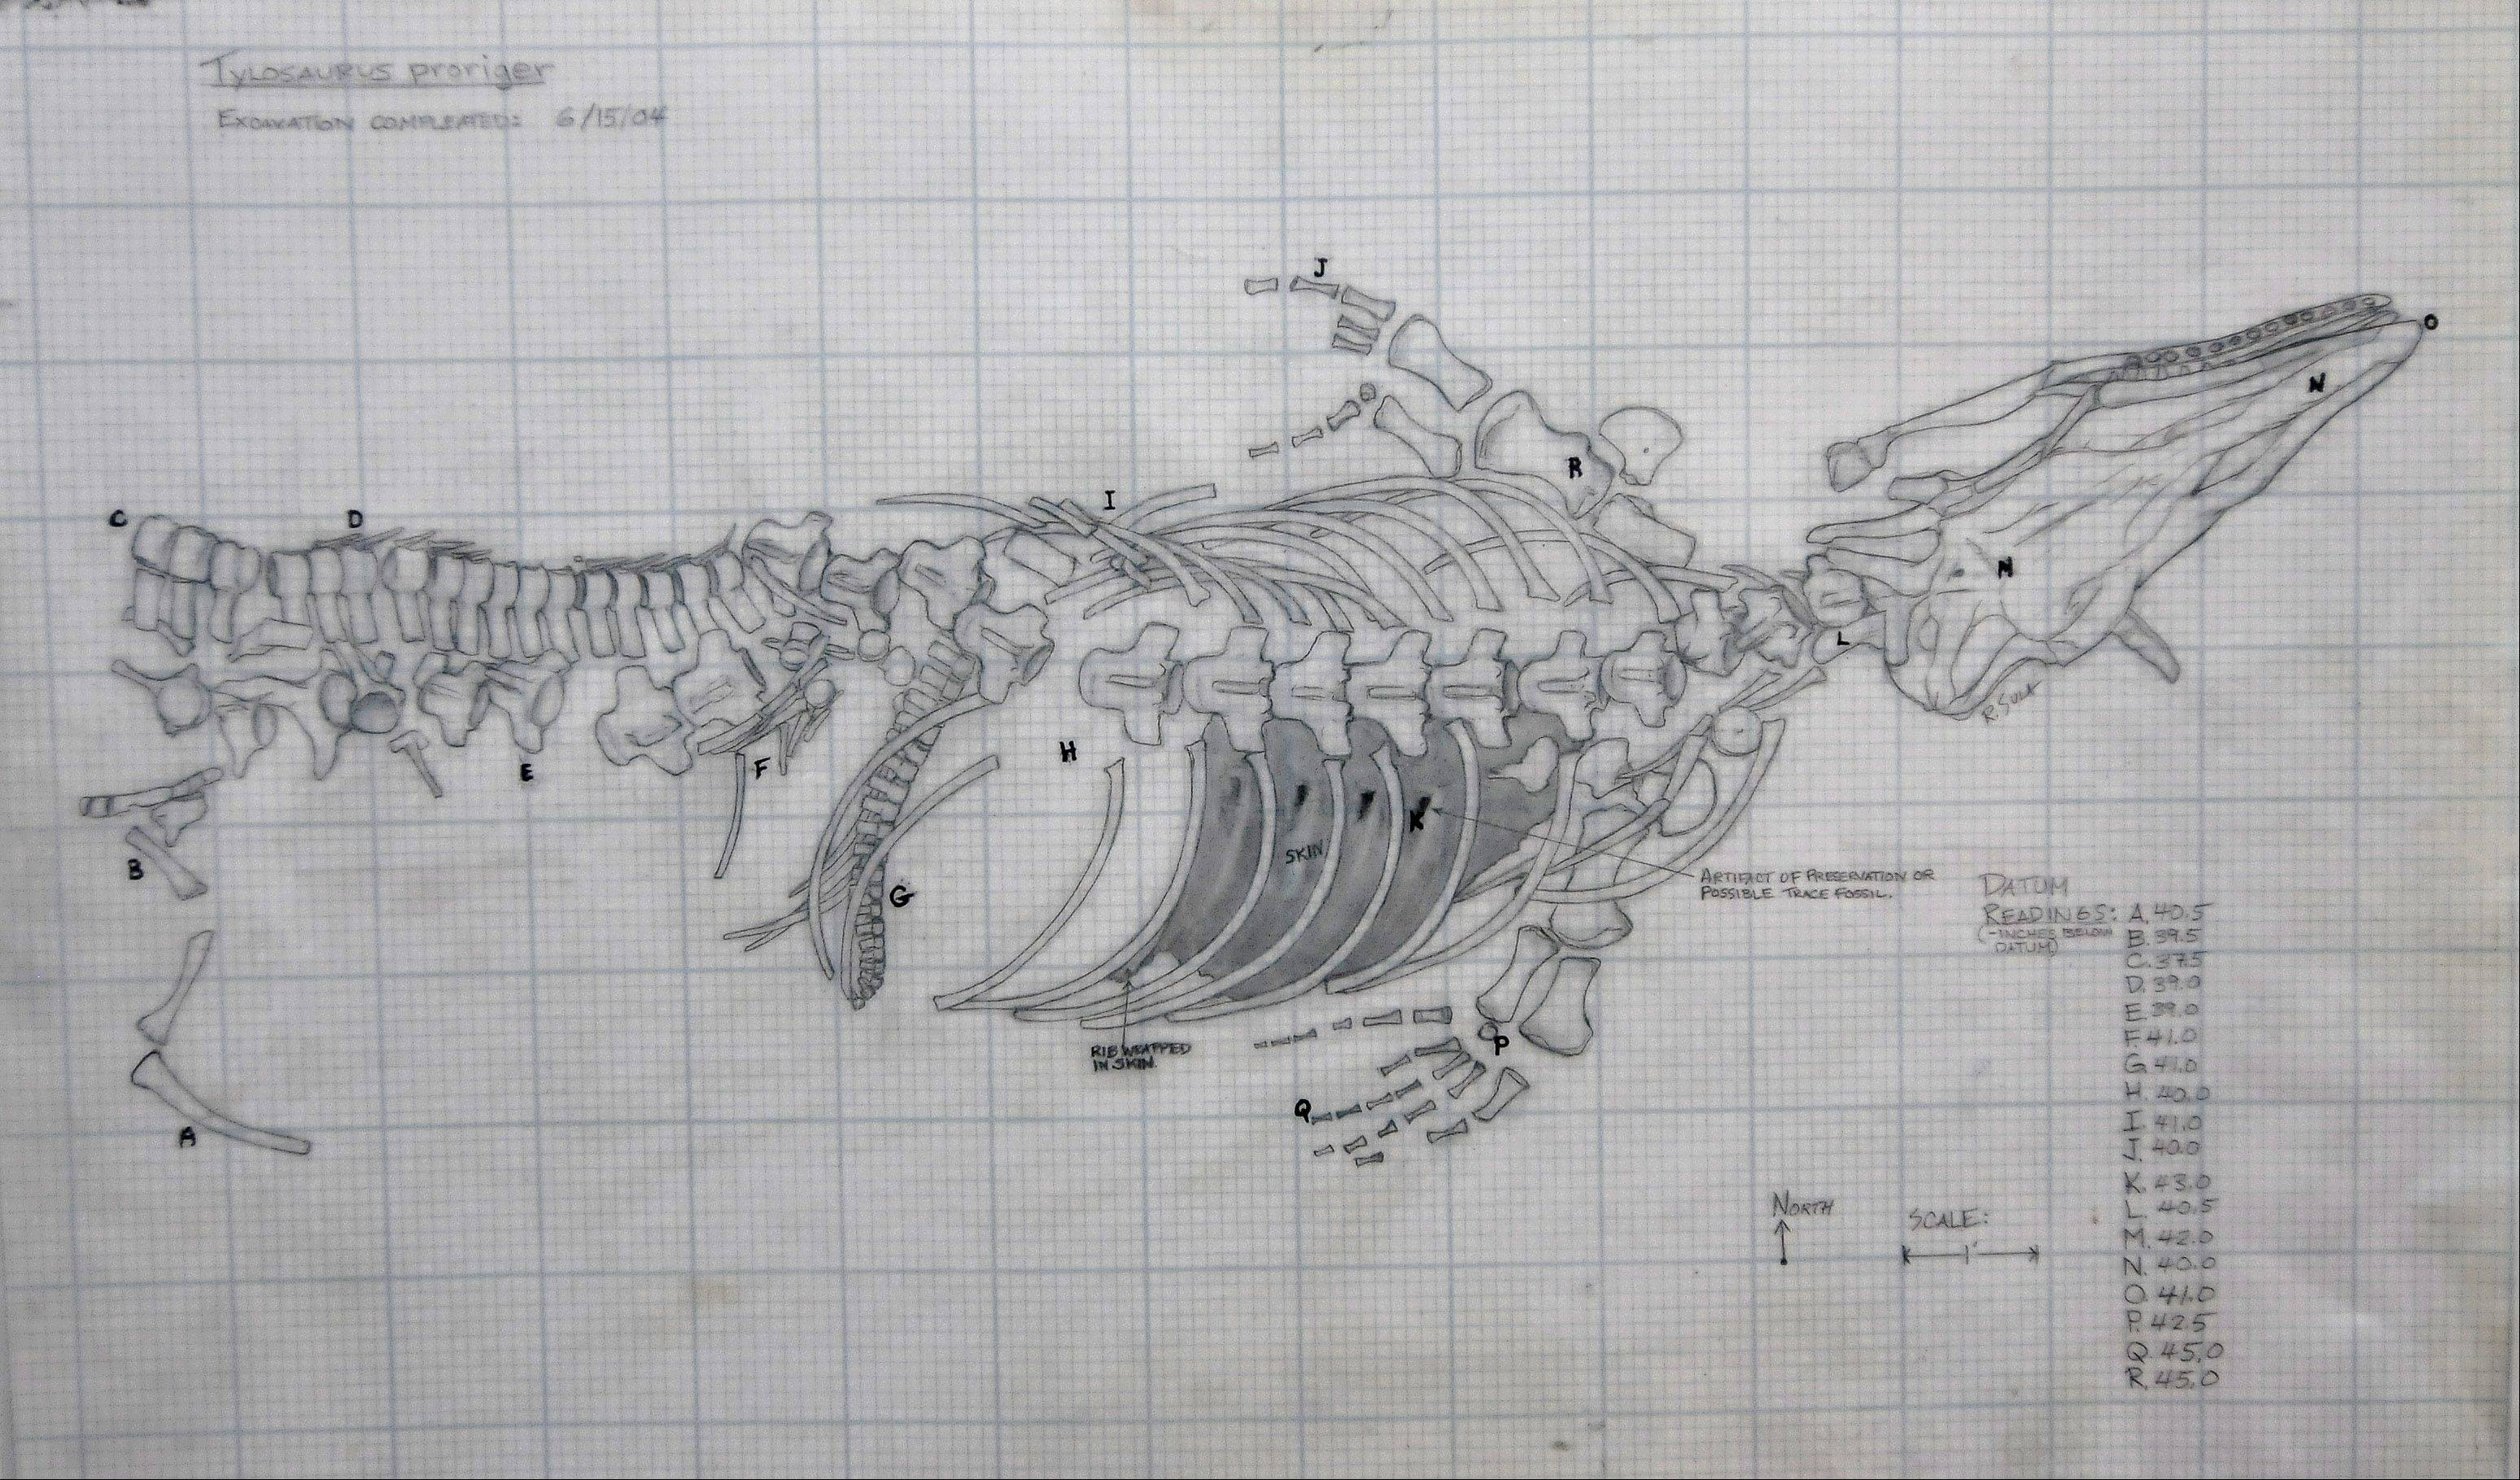 Rob Sula's site map of the tylosaurus he found shows each bone painstakingly drawn in its exact location.